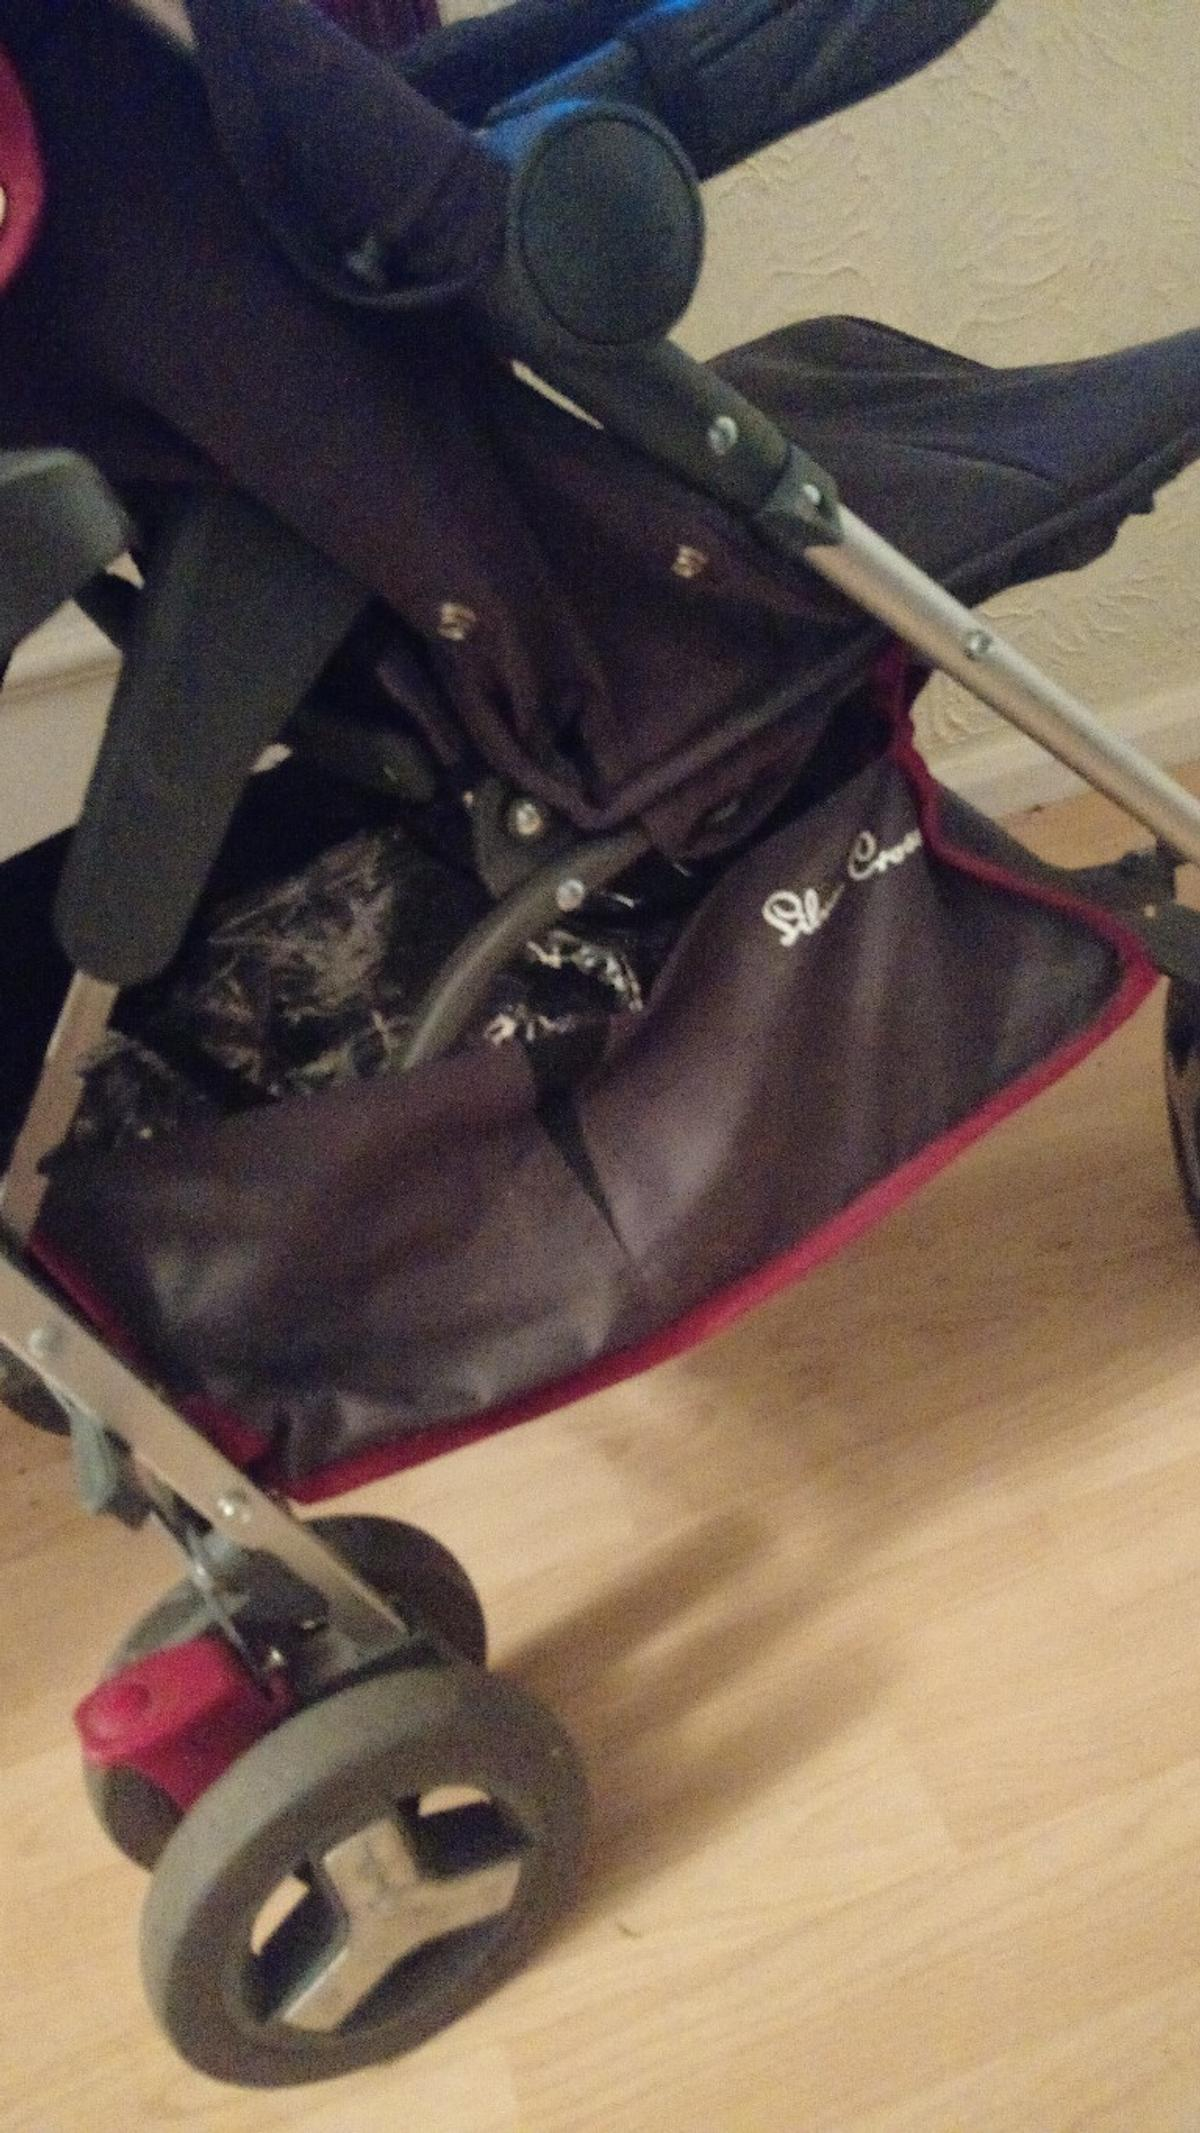 Used as a second pram so is in fantastic condition